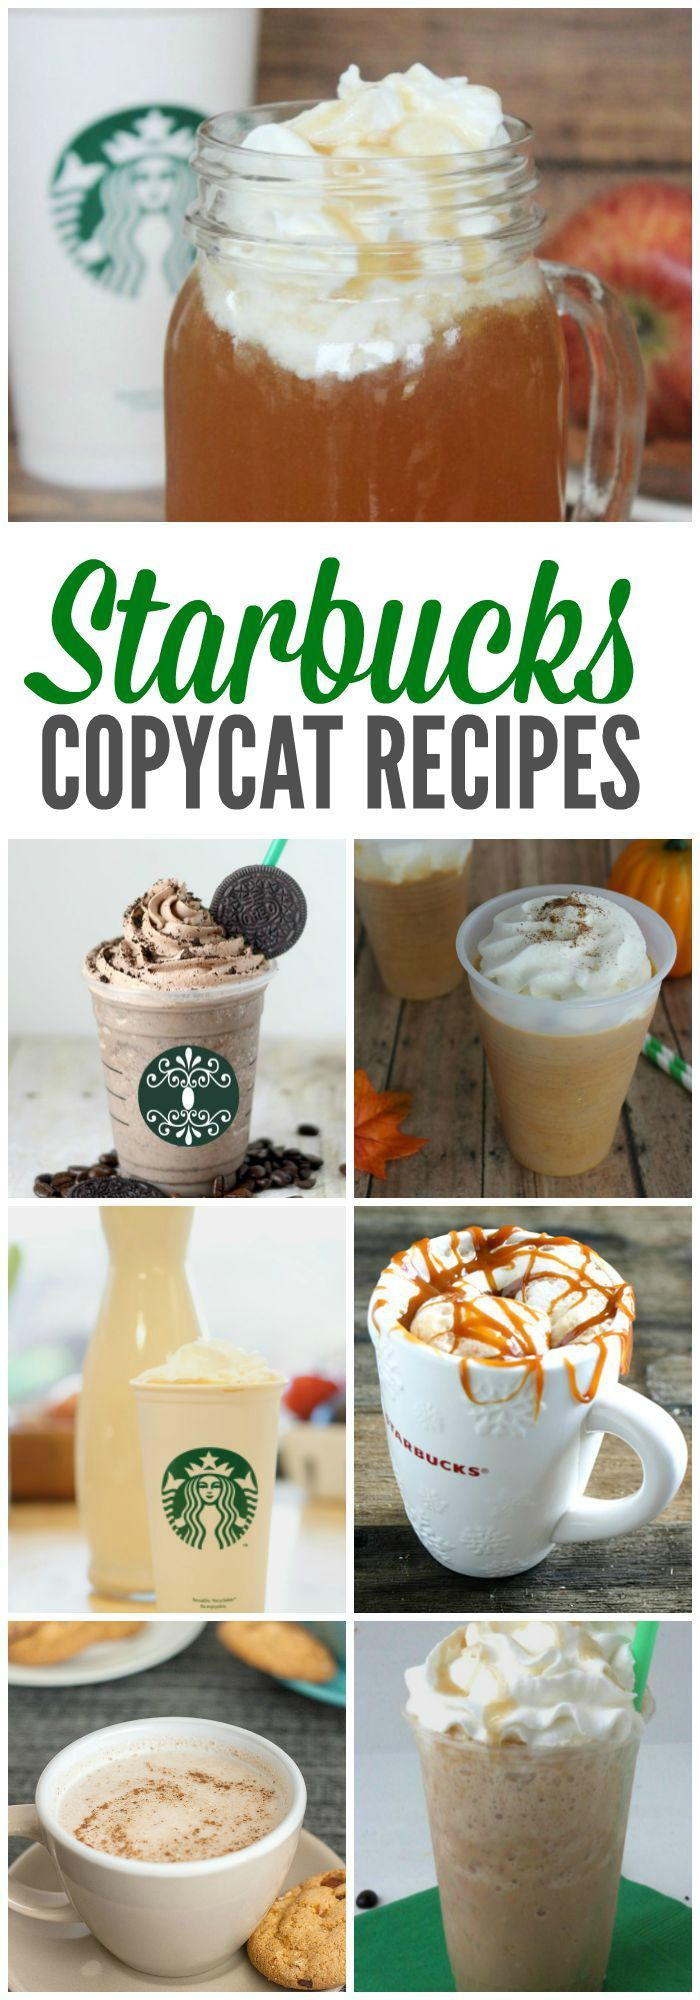 THE BEST Starbucks Copycat  Recipes and Starbucks Drinks to Make at Home! YUM!